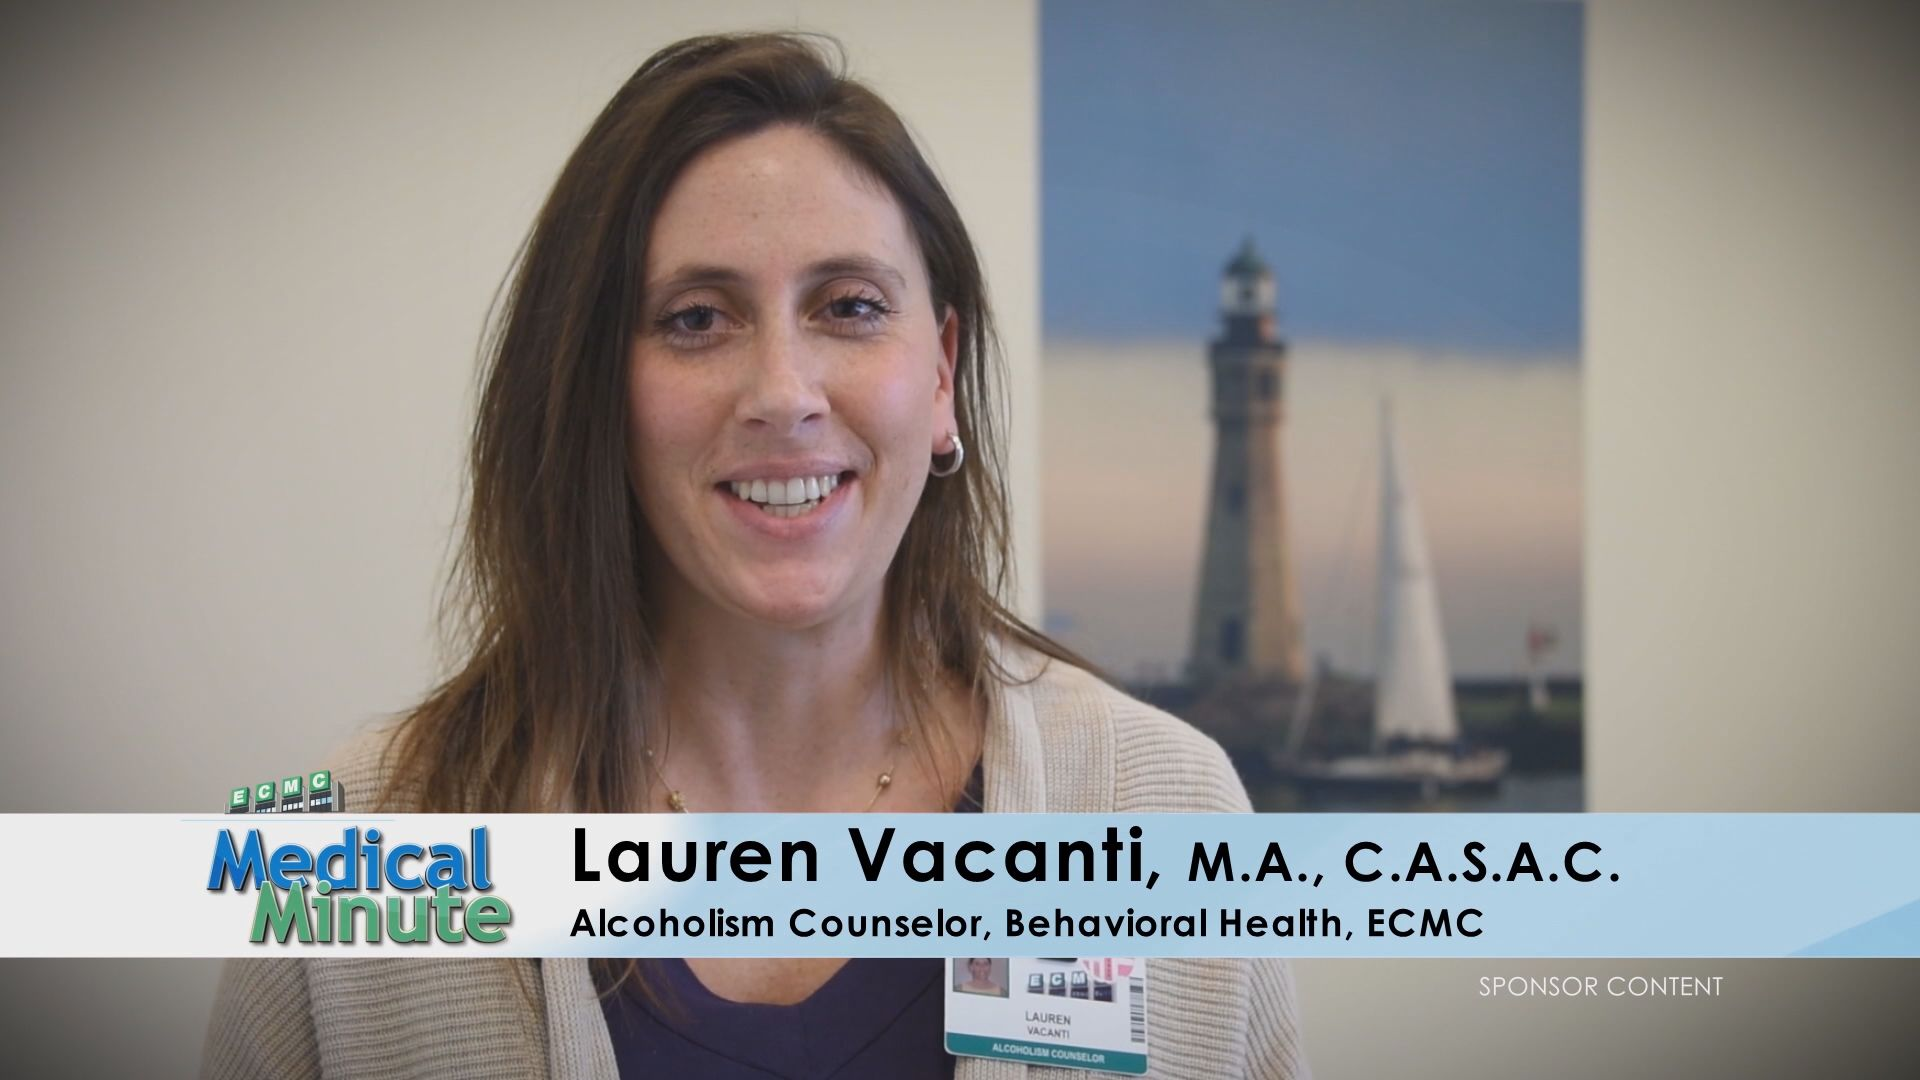 ECMCMedicalMinute LaurenVacanti ChemicalDependency May2019 STILL